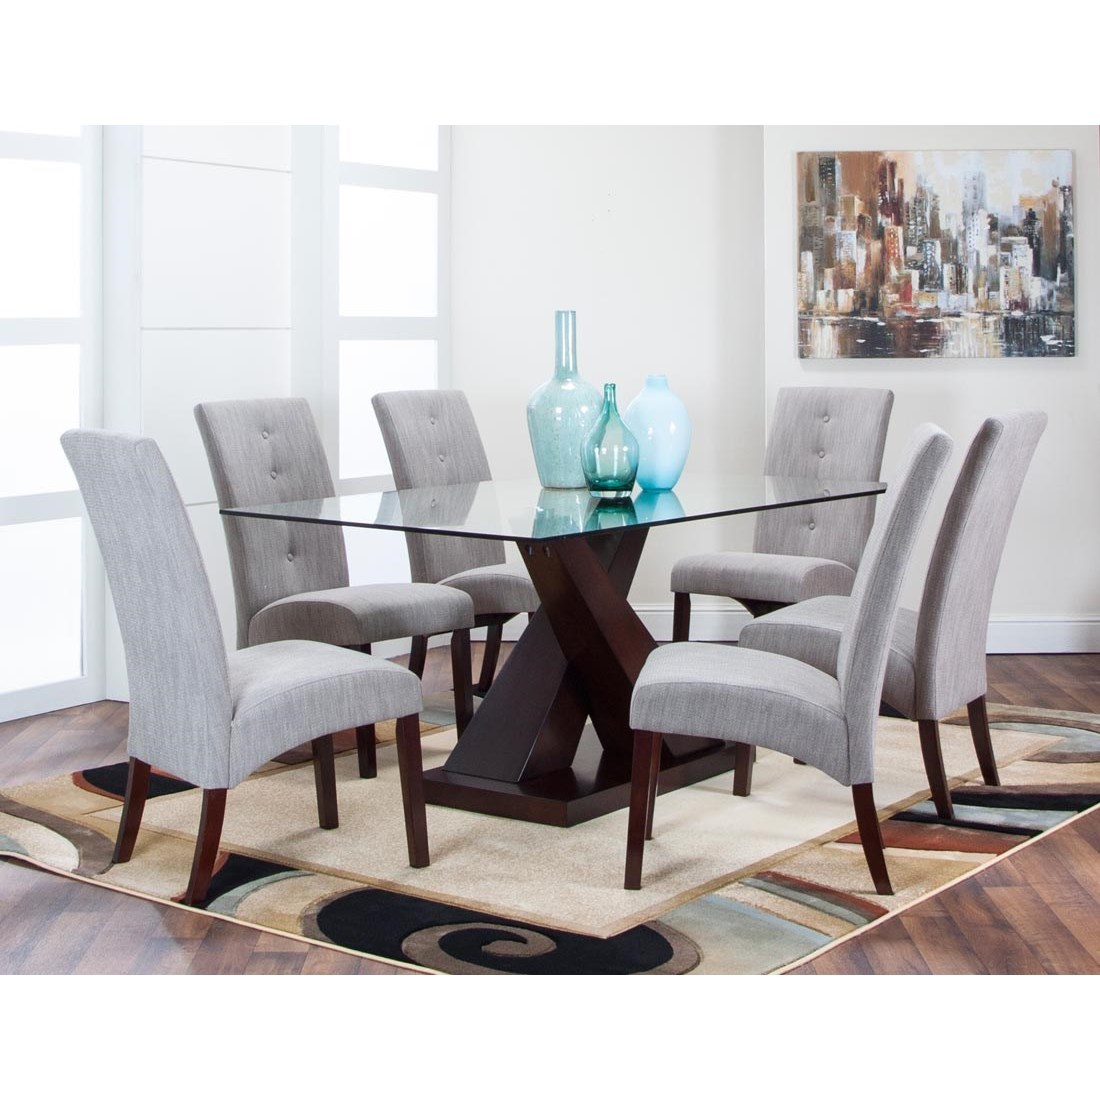 Cramco Inc Sienna 7 Piece Dining Set Value City Furniture Casual Dining Room Group